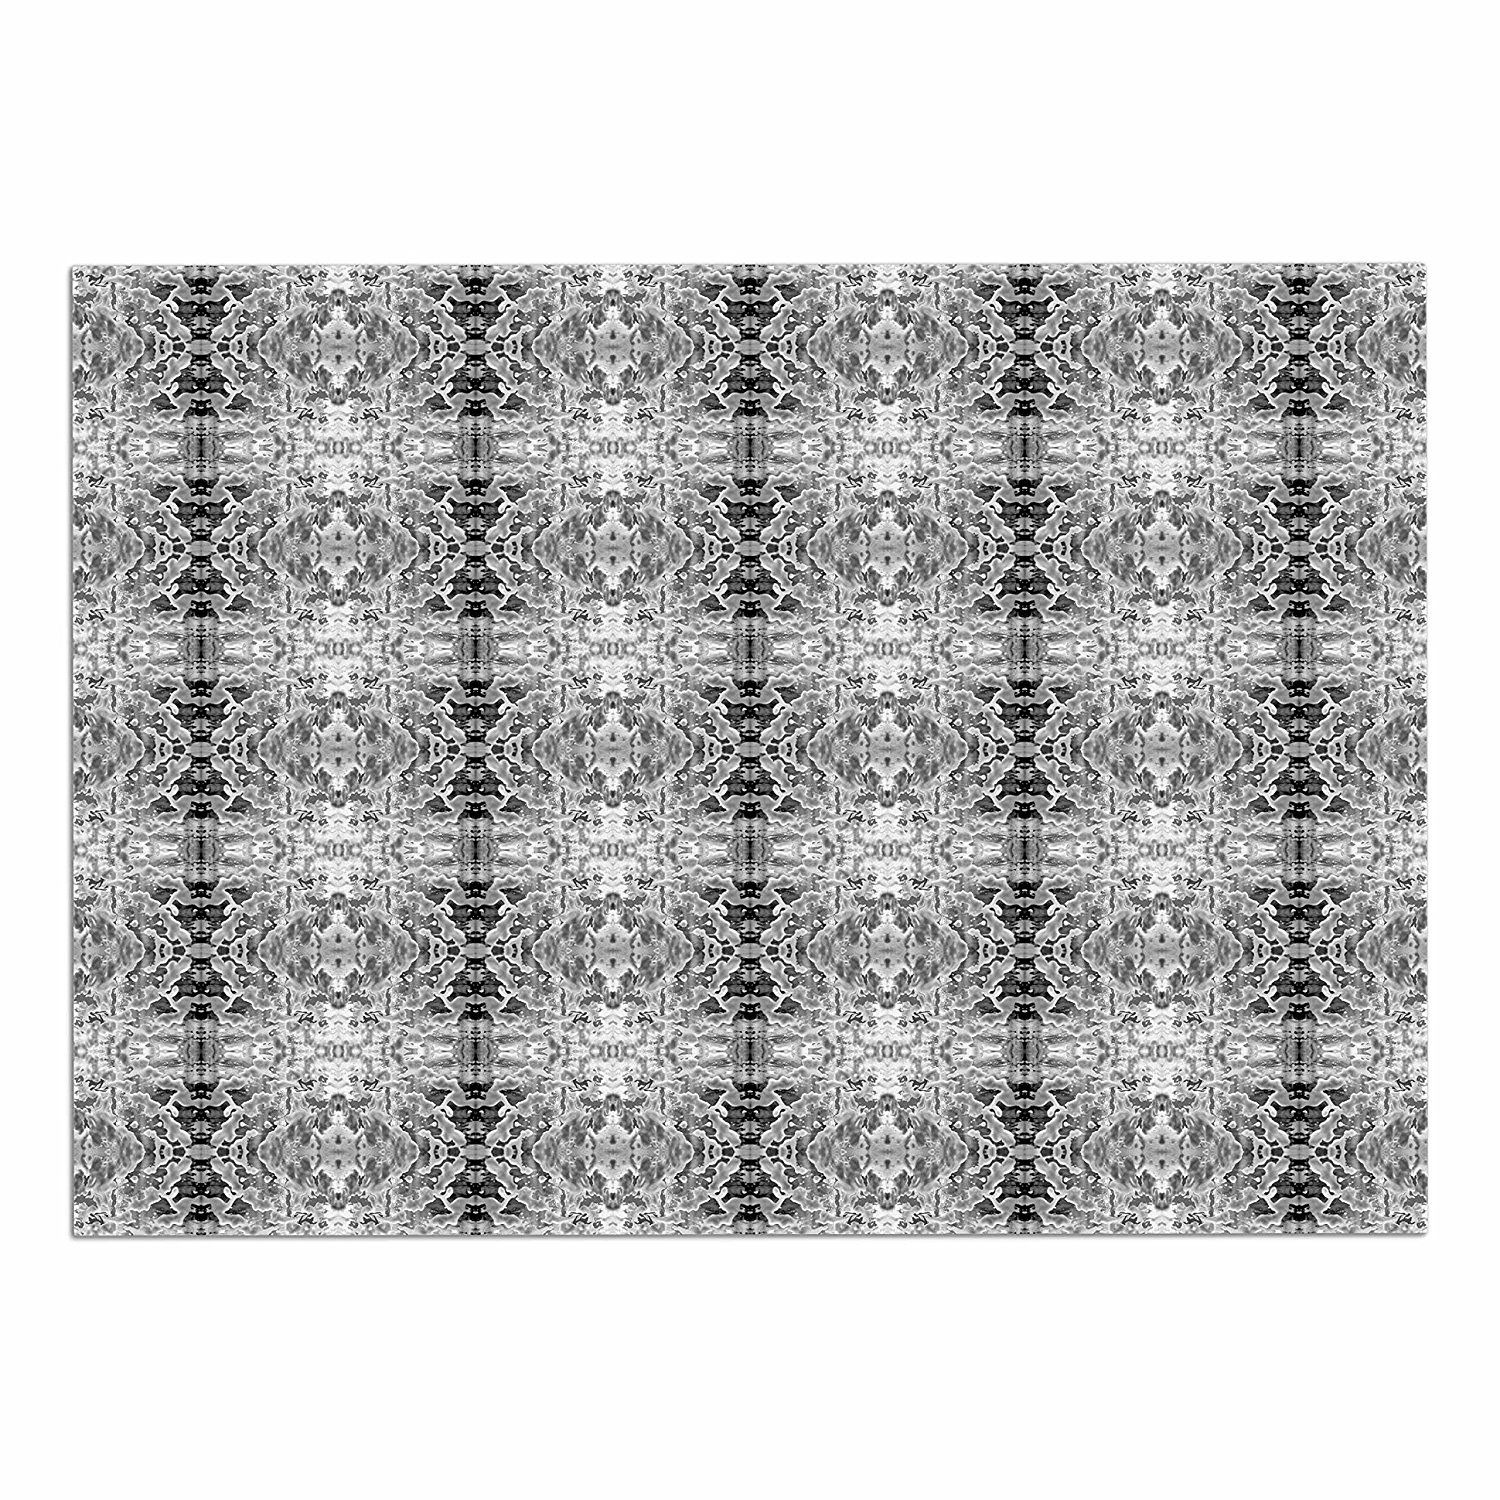 KESS InHouse Bruce Stanfield 'Rage against the Machine BW' Black White Dog Place Mat, 13' x 18' ** New and awesome product awaits you, Read it now  (This is an amazon affiliate link. I may earn commission from it)